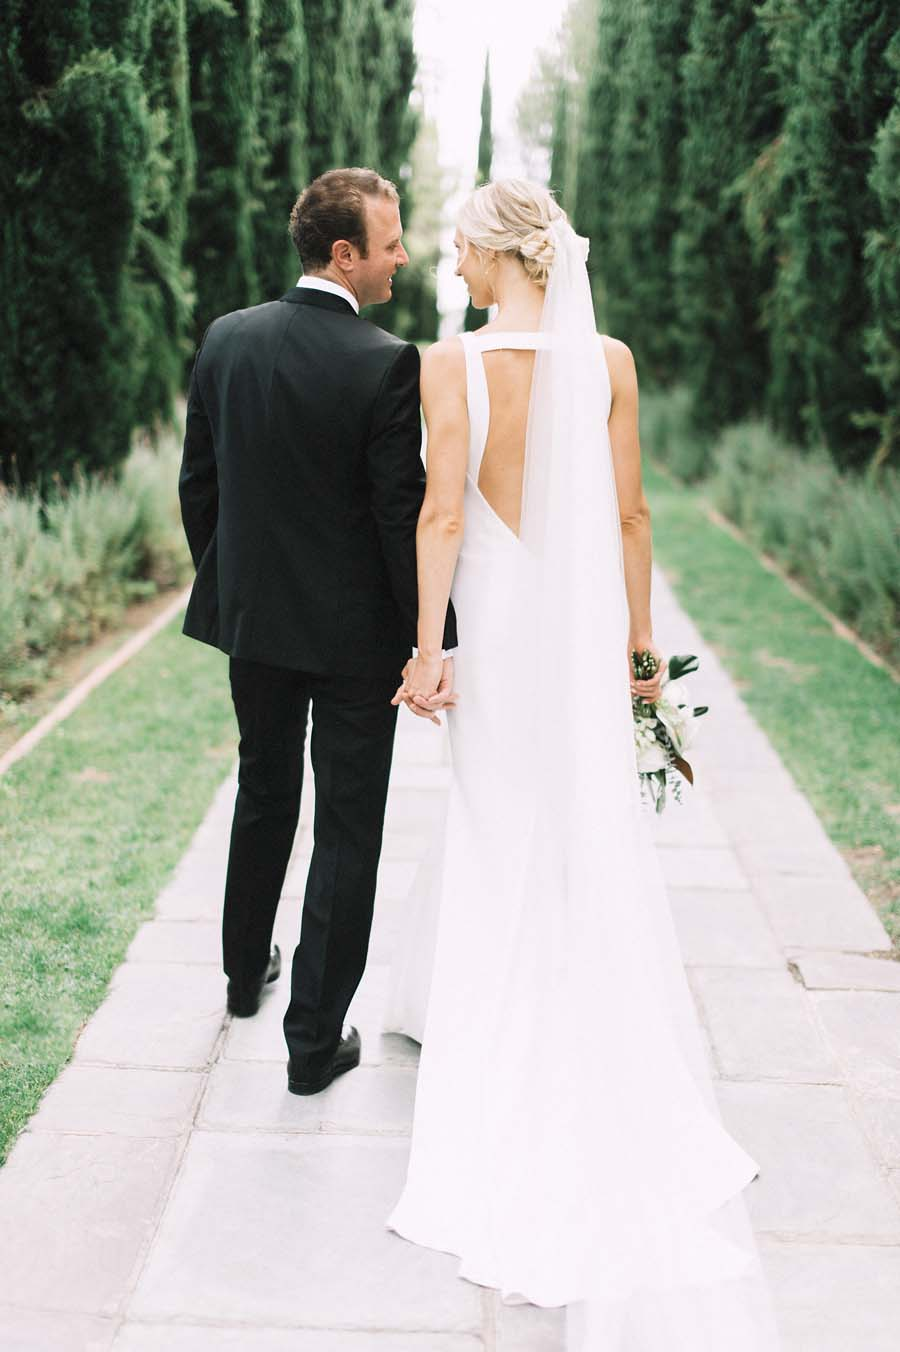 stylishdetailsevents.com | Greystone Mansion Weddings | Stylish Details Planning and Event Design | Paul Von Rieter Photography | Southern California and Hawaii Wedding Planner  9 (2).jpg